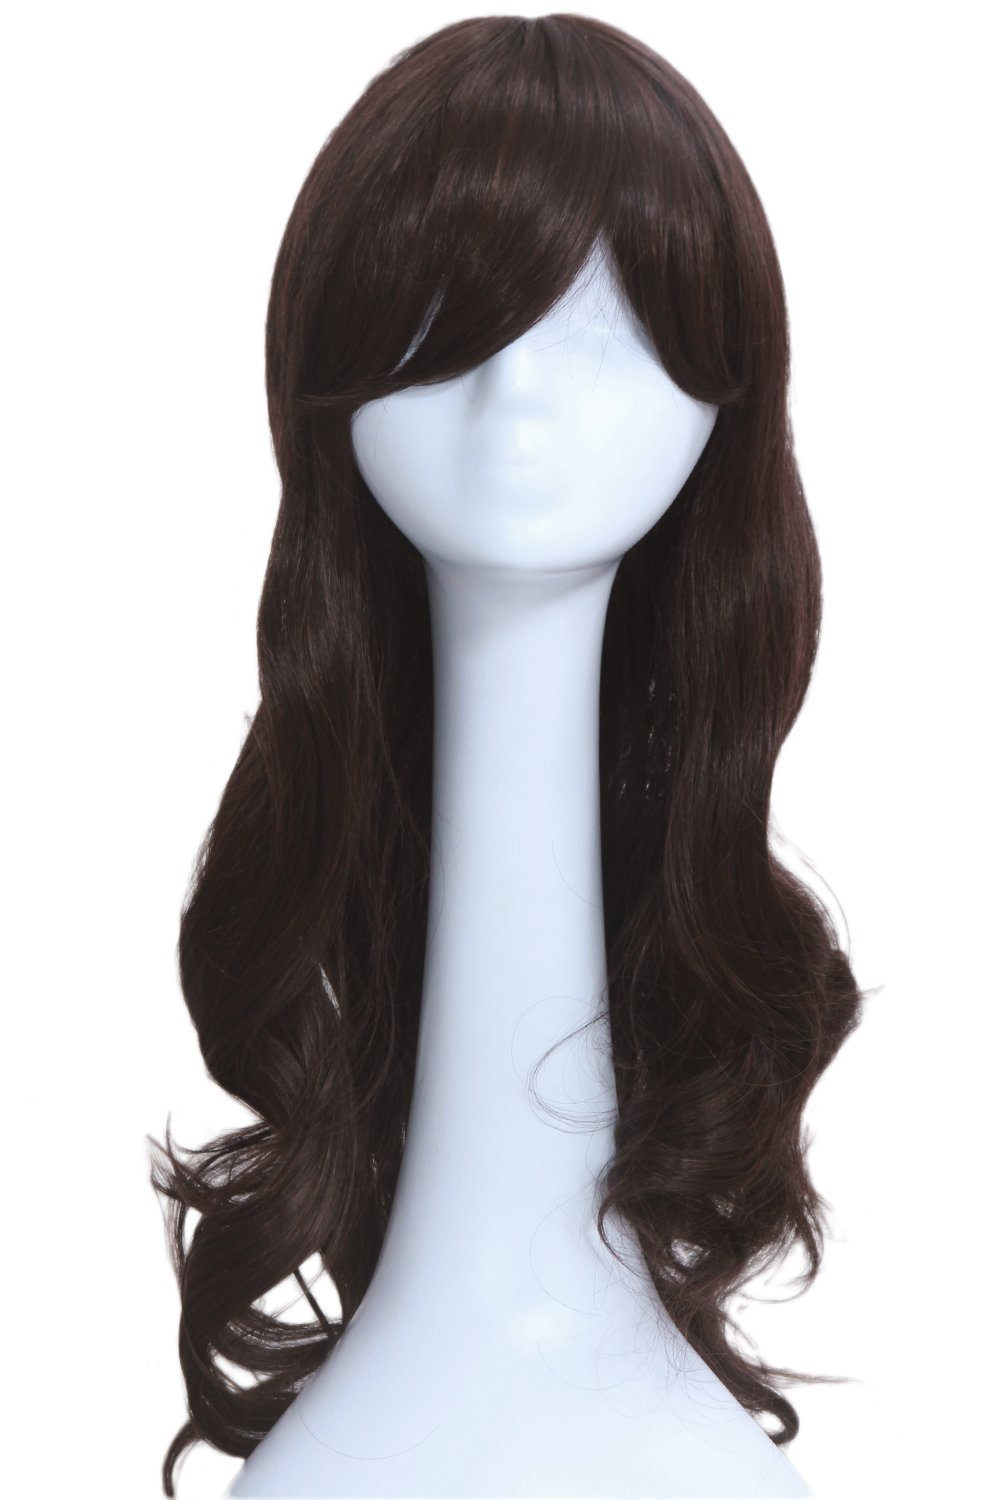 Carmen Sandiego Wig Cosplay Costume Black Long Curly Hair Accessories Halloween Xcoser